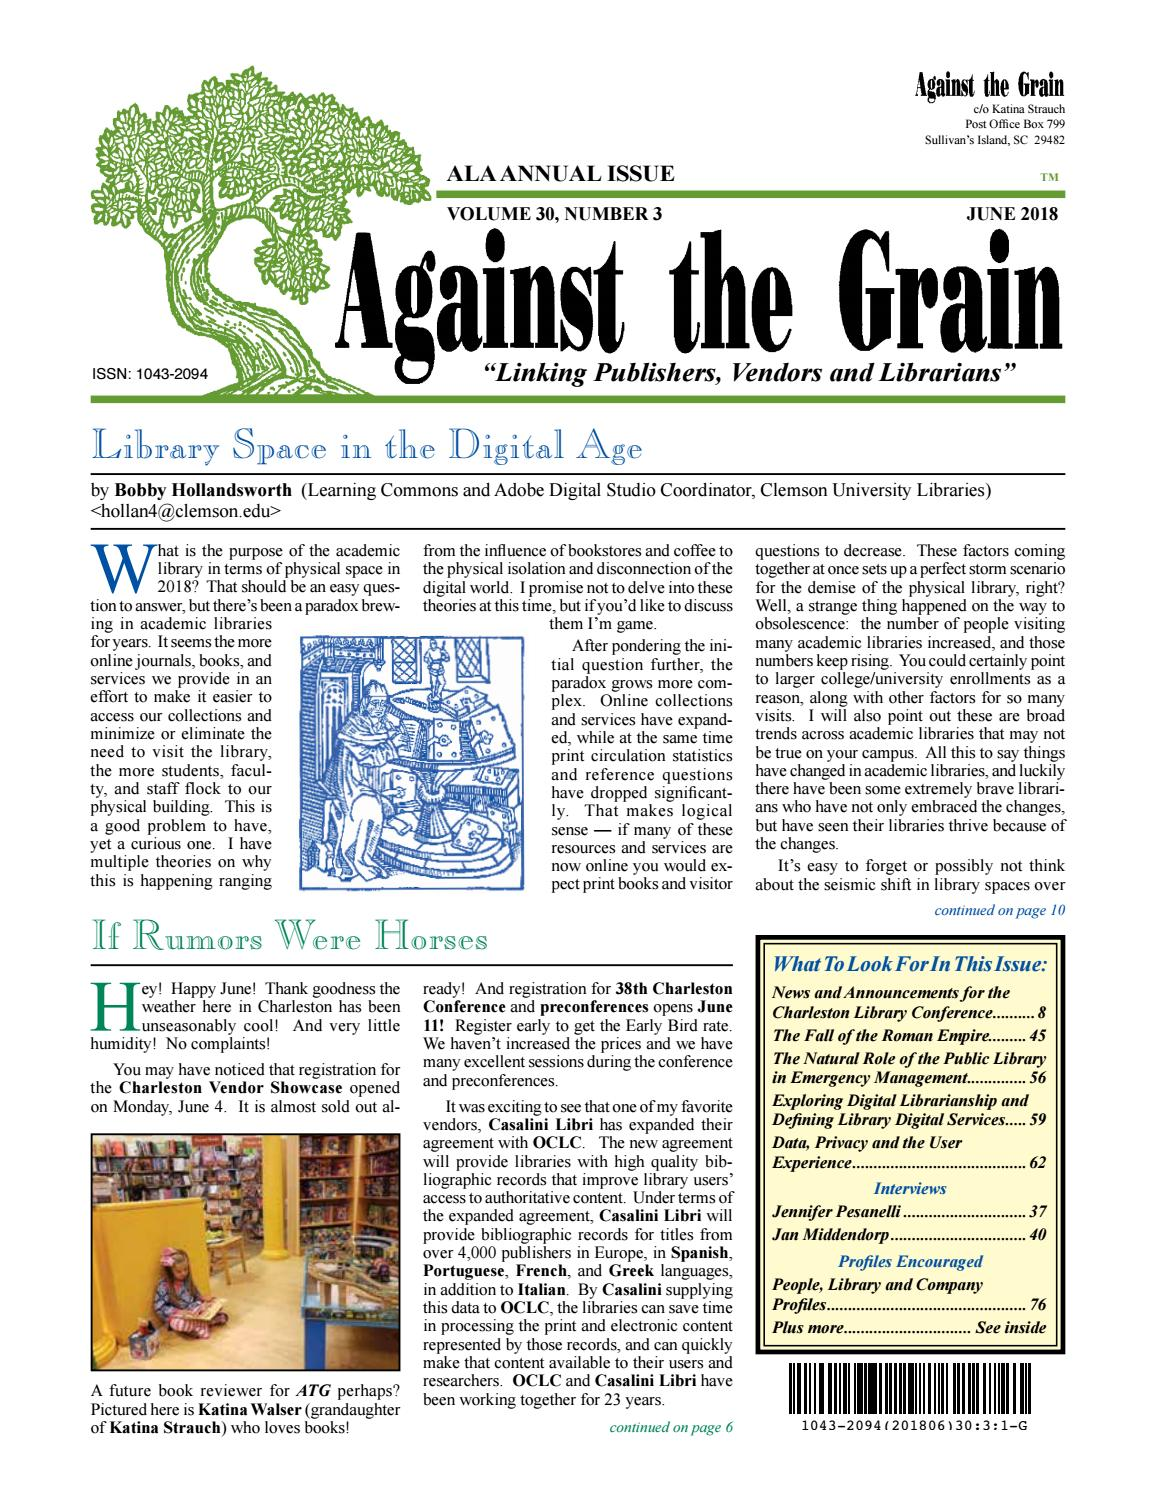 Against The Grain V30 3 June 2018 By Issuu Amazoncom Science Wiz Cool Circuits Toys Games